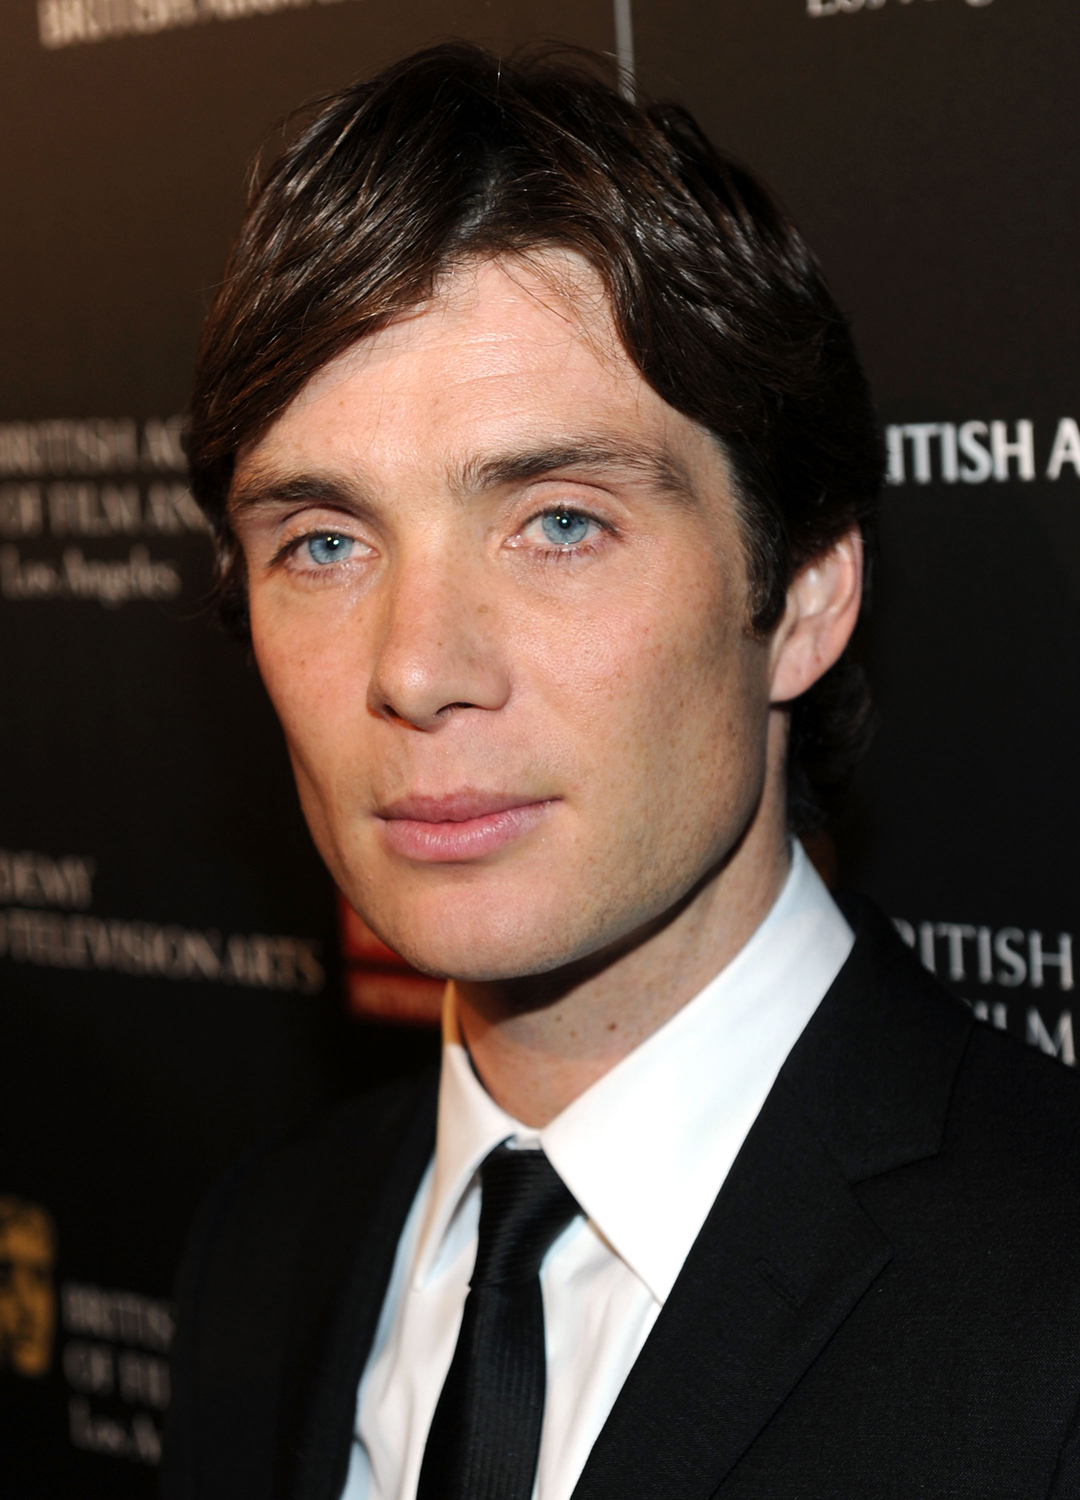 Cillian-Murphy-wallpaper-wp3803799